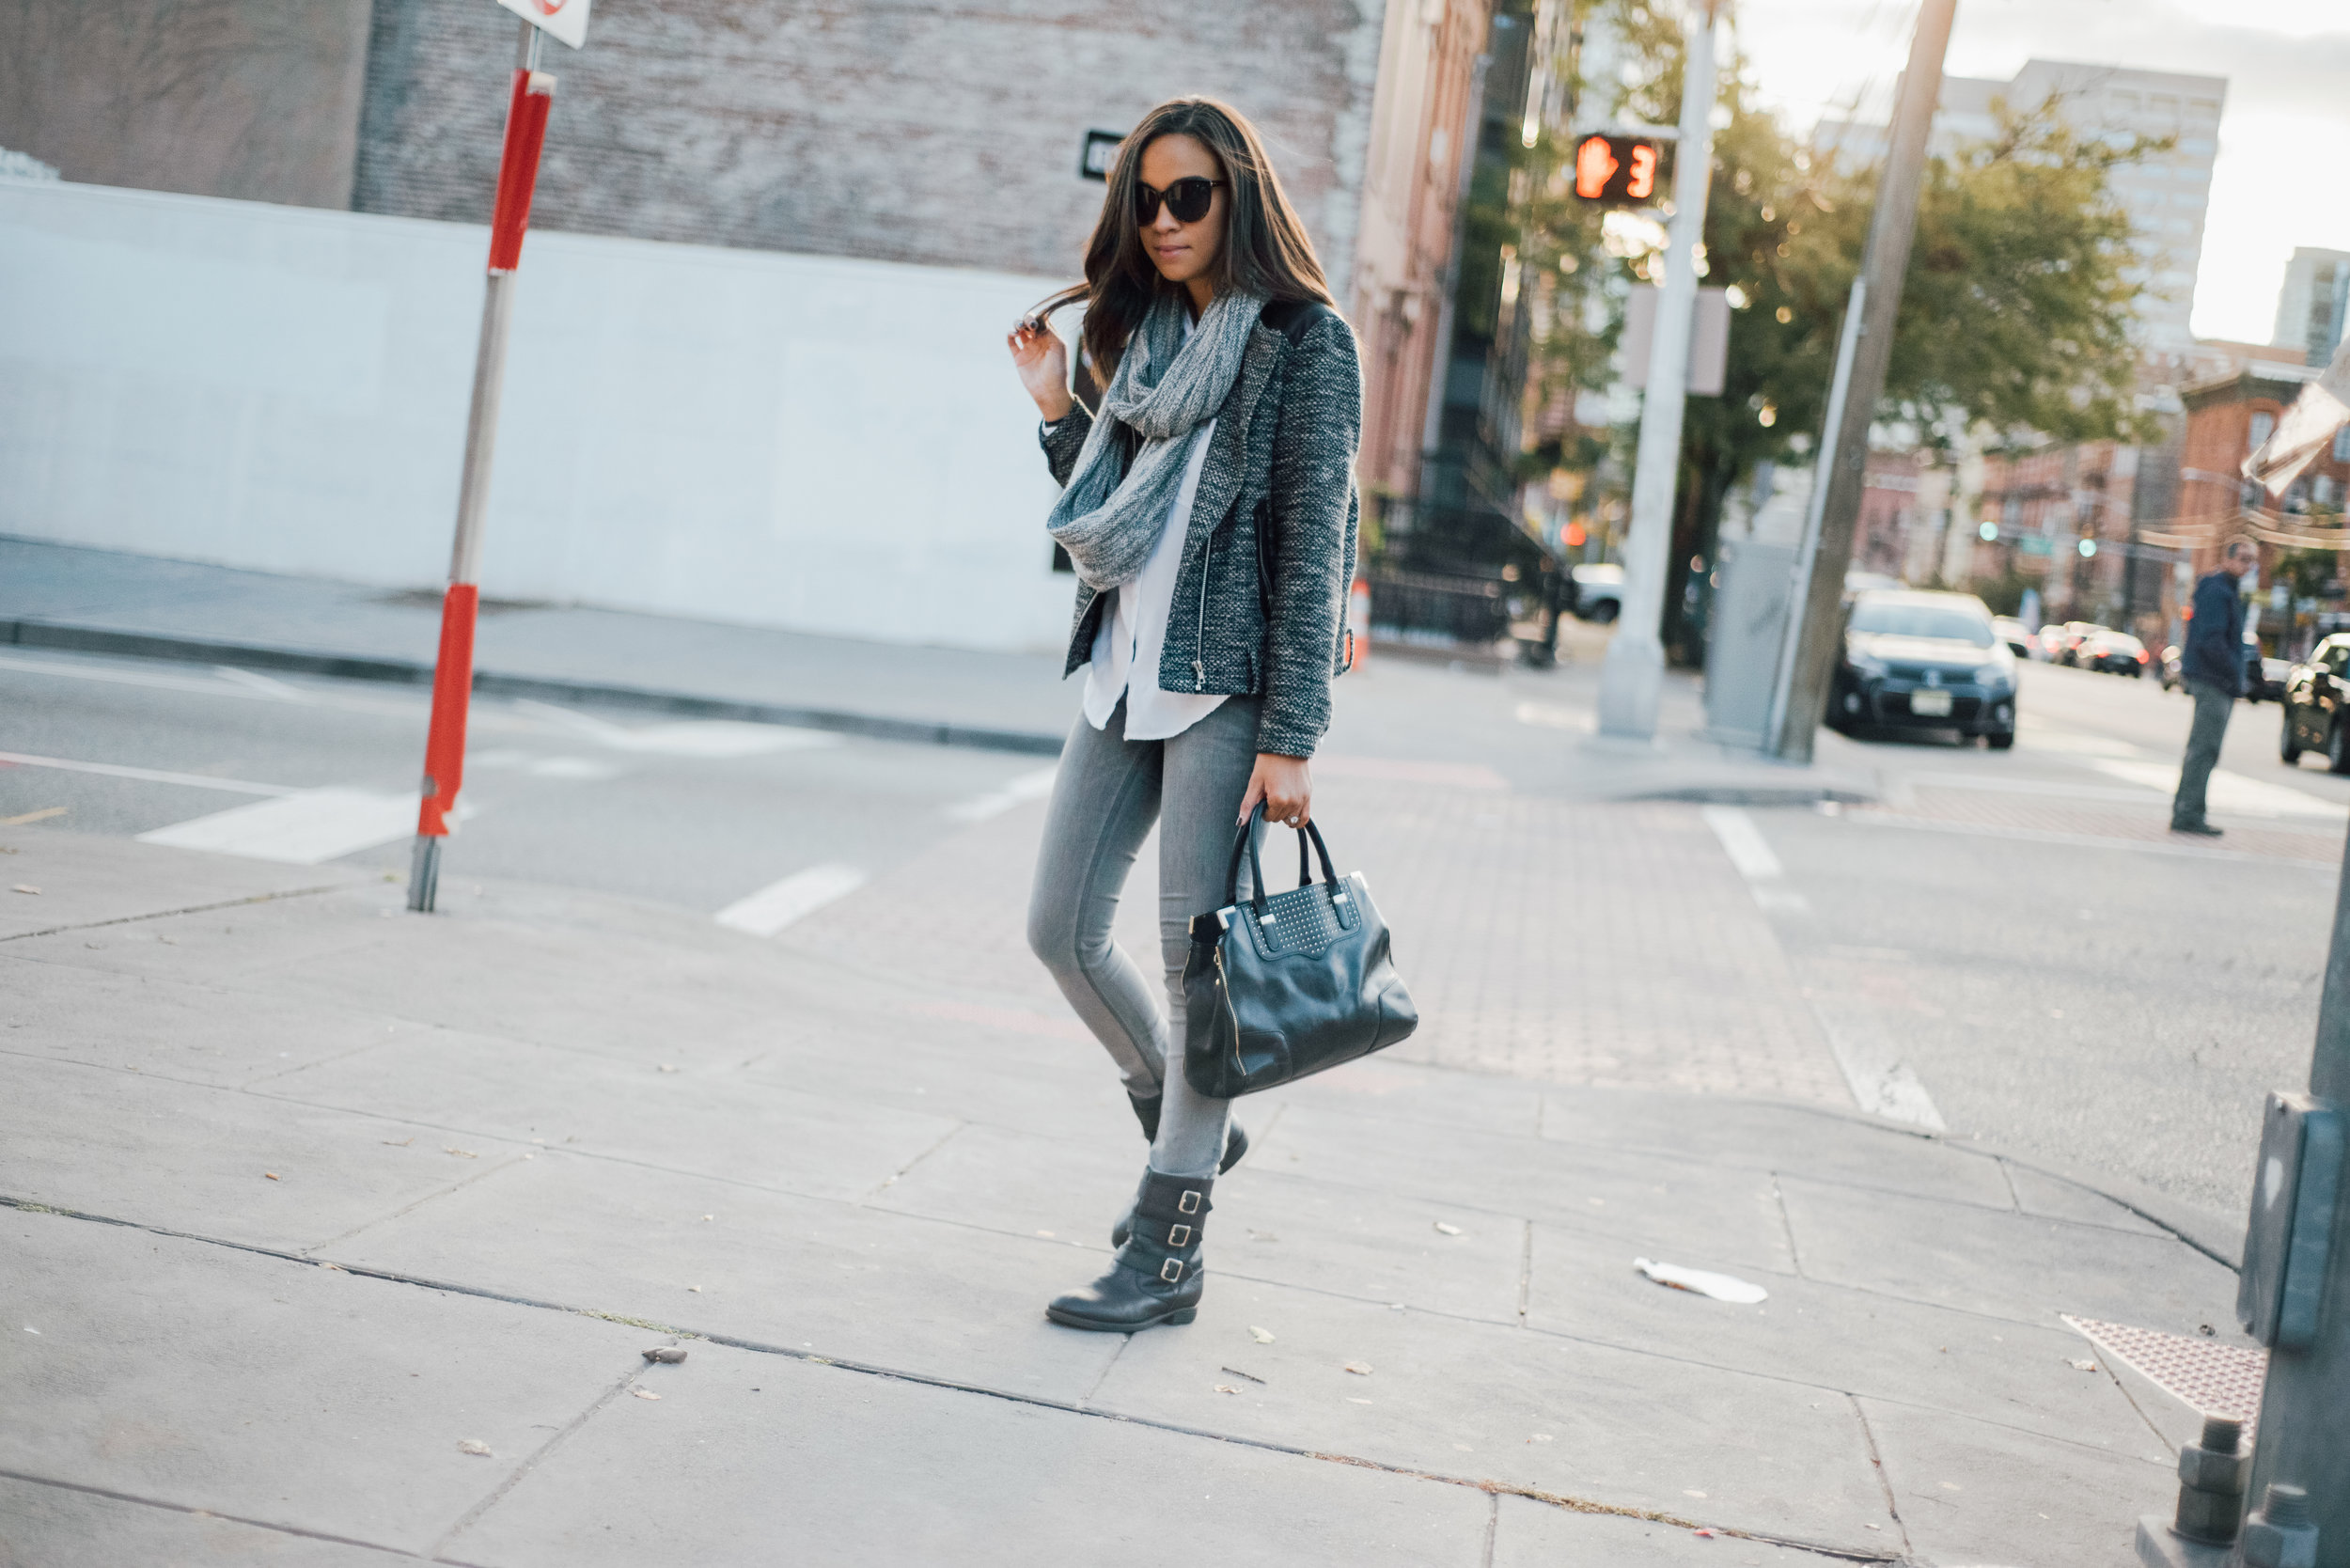 Grey Jacket + Black Moto Boots 19.jpg